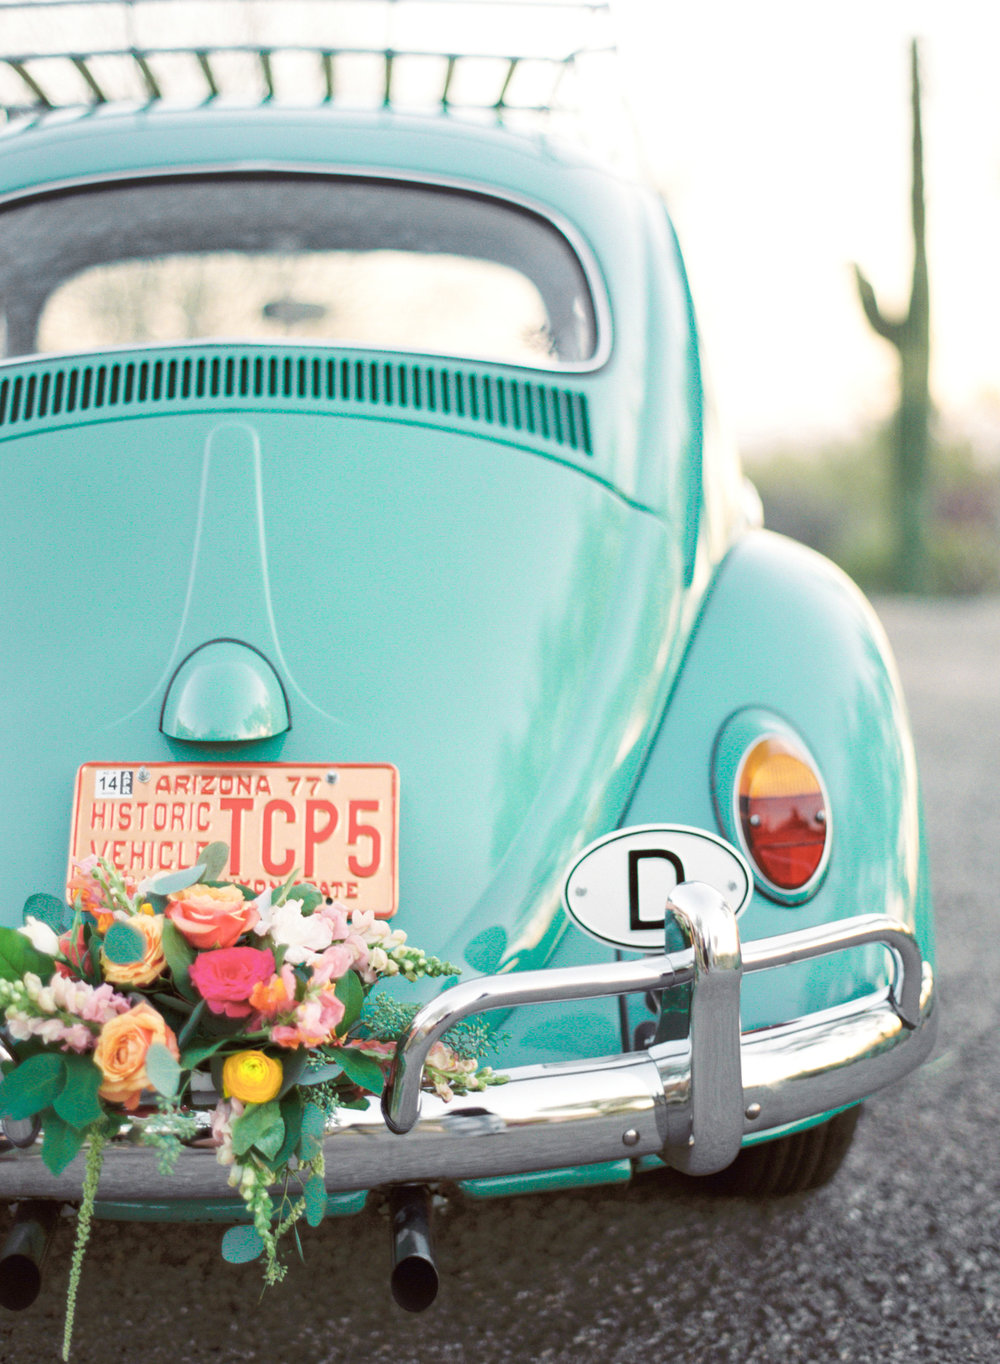 Adorable teal volkswagen beetle wedding car decorated with florals